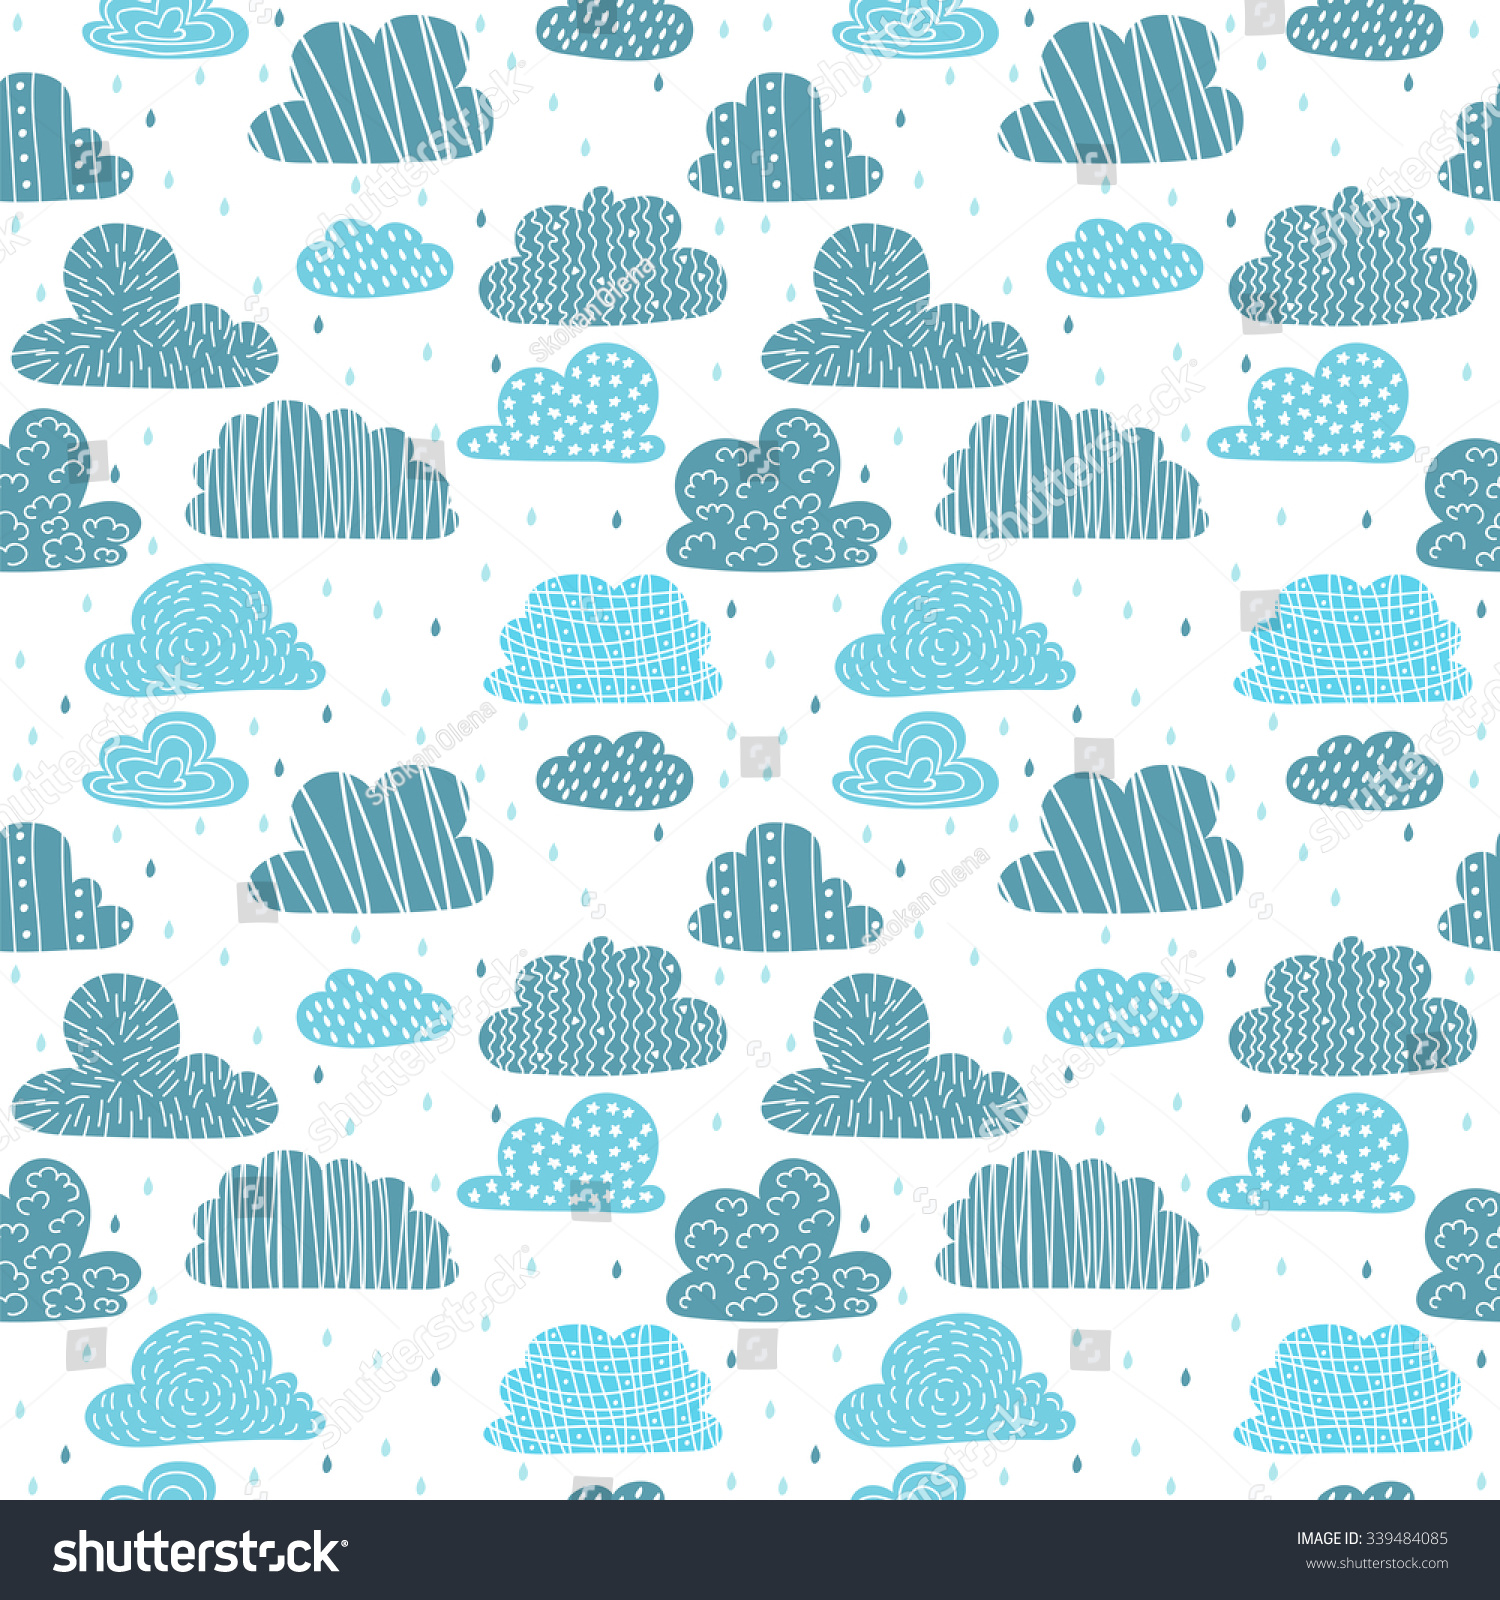 Cute Hand Drawn Seamless Pattern Clouds Stock Vector (Royalty Free ...